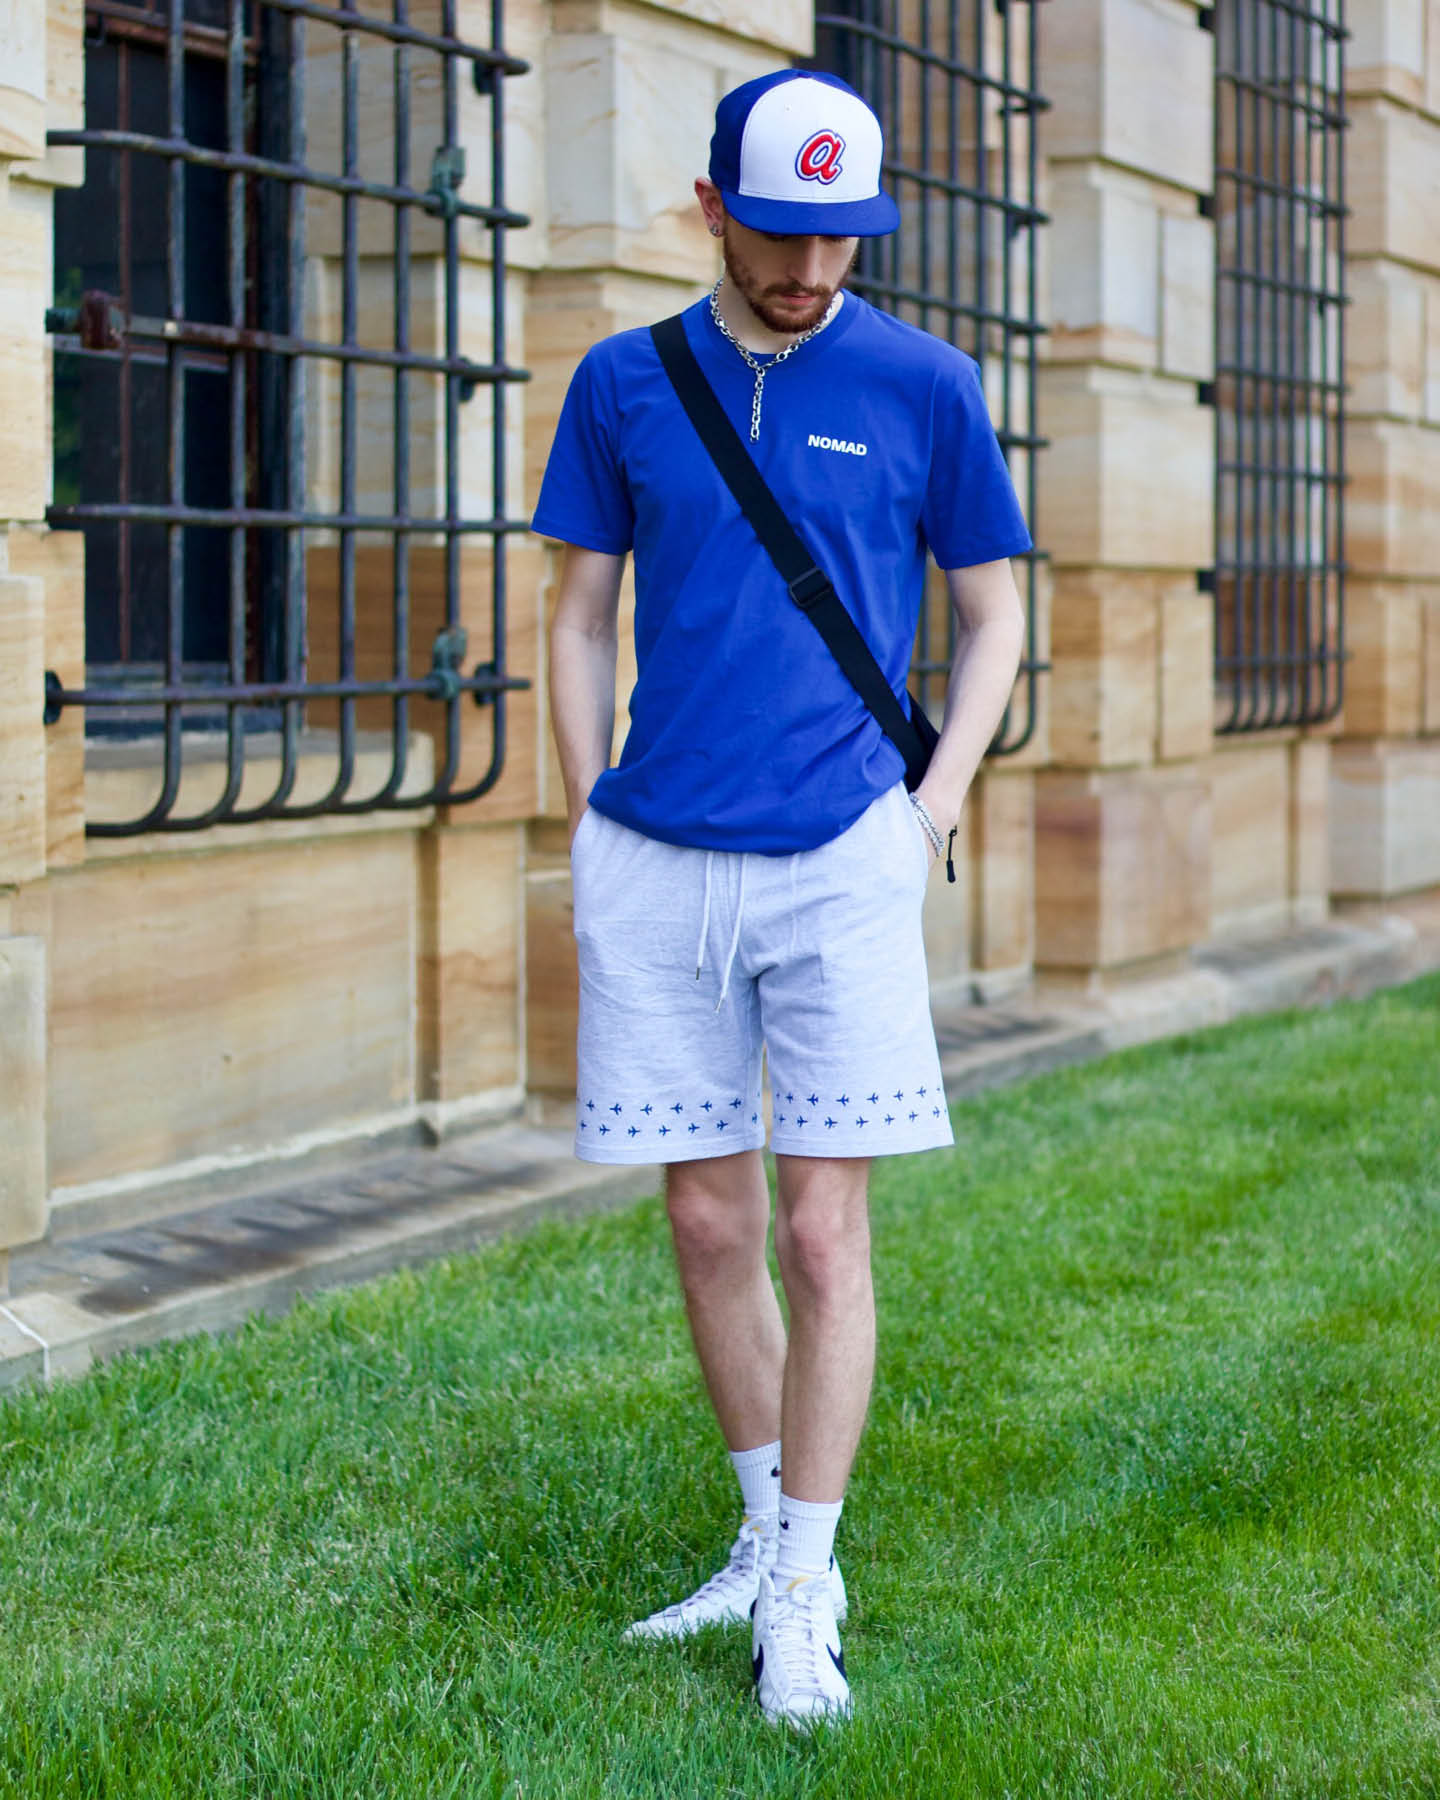 Aaron Seelig wearing The World Is Yours shirt & Runway Shorts from the Nomad Creative Works Spring 2021 collection at the Dayton Art Institute, Front View.